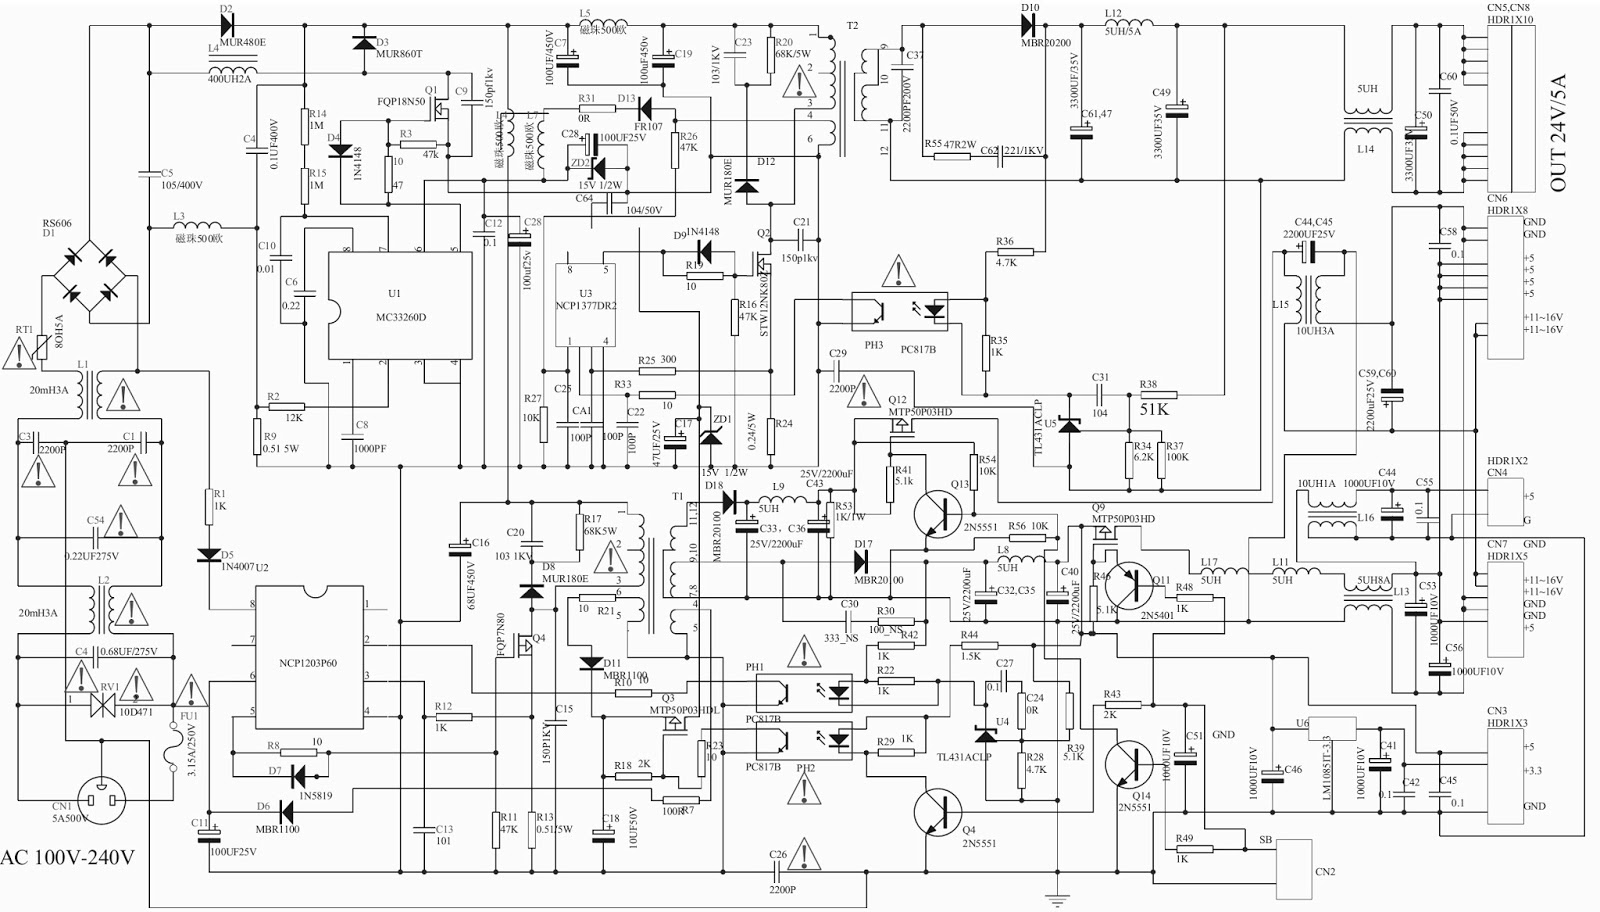 Schematic Diagram Of Power Supply Tv Index 20 Sensor Circuit Seekiccom Akai Lta27a901 Lcd Main Smps